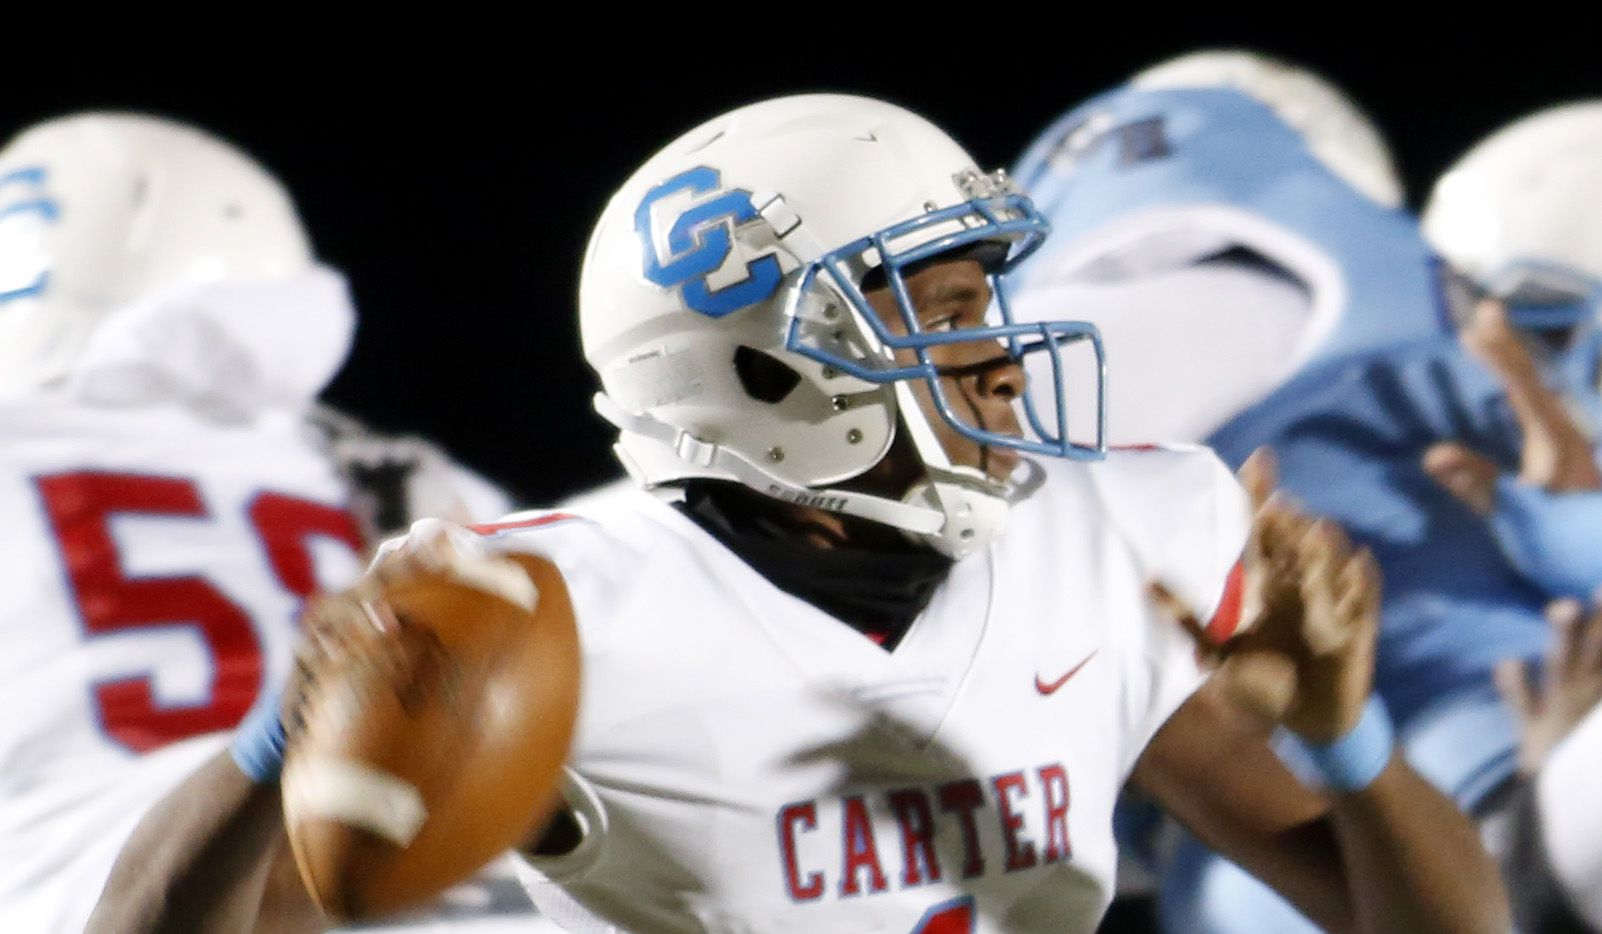 Carter quarterback Kace Williams (1) prepares to deliver a pass from the pocket during first quarter action against Wilmer Hutchins. The two teams played their District 8-4A Division 1 football game at Wilmer Hutchins High School Stadium in Dallas on October 23, 2020.